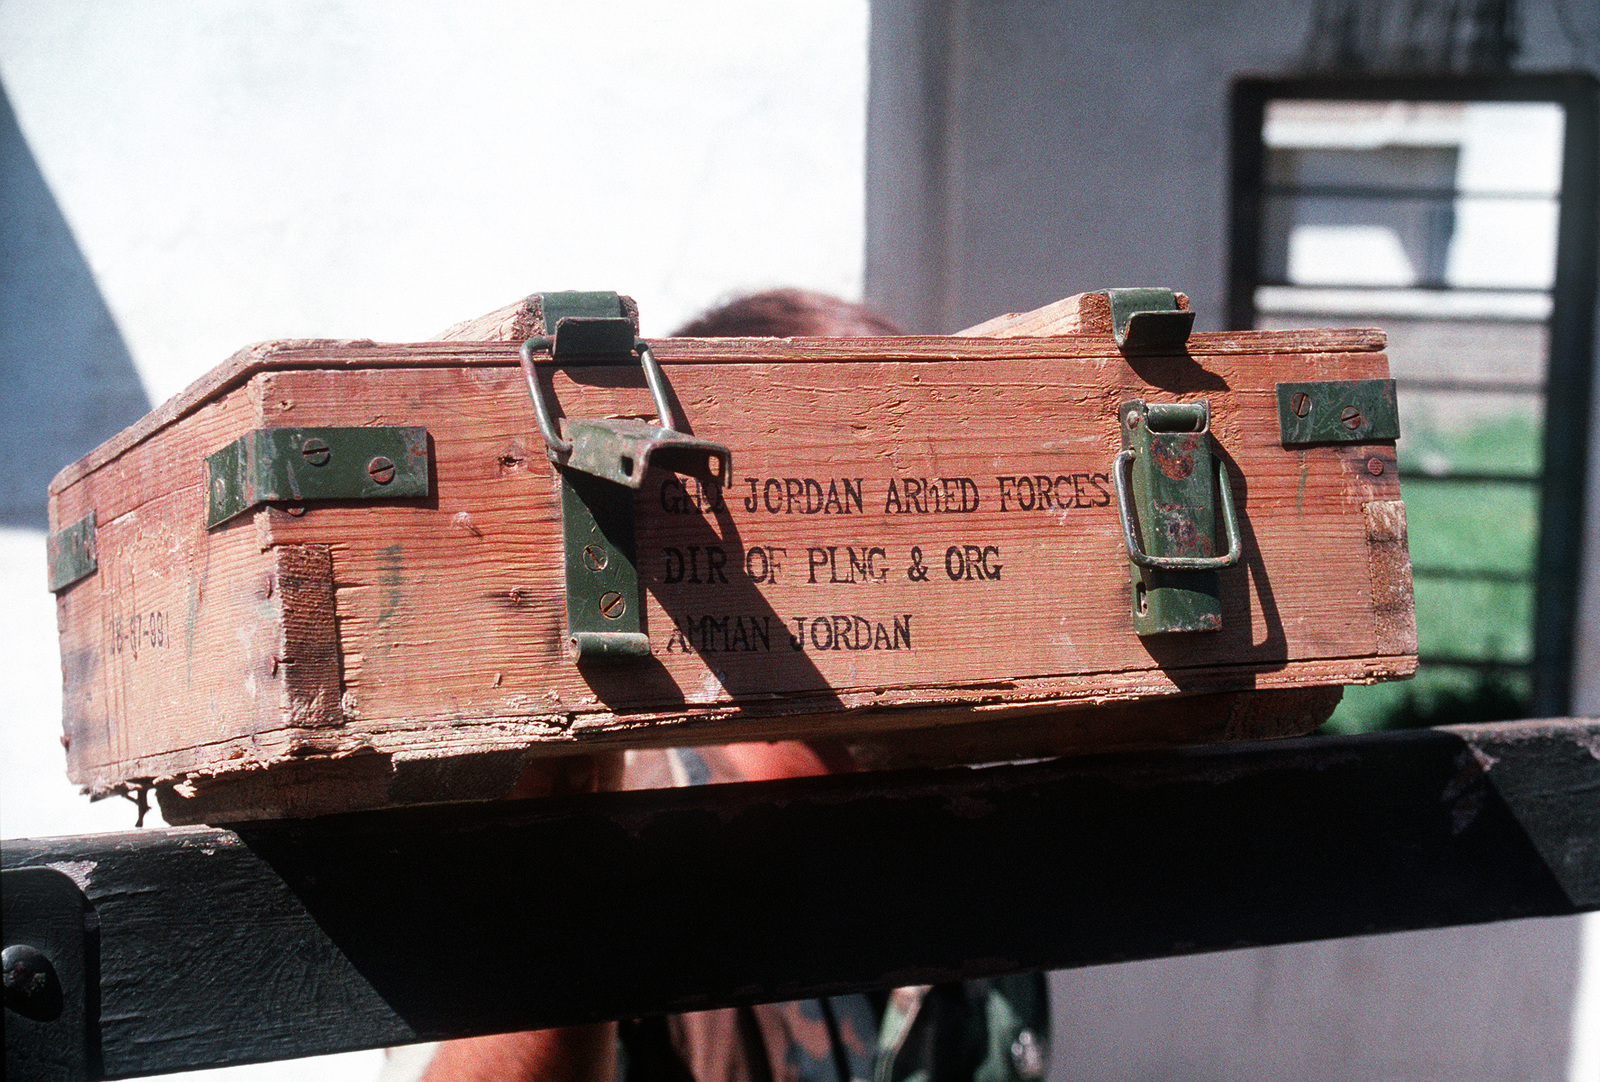 An ammunition crate bearing Jordanian markings is displayed after being recovered from an abandoned building by the Marines of an explosive ordnance disposal (EOD) team attached to Marine Expeditionary Unit (MEU) Service Support Group 24 (MSSG-24). The disposal of discarded Iraqi munitions is being conducted in conjunction with Operation Provide Comfort, a multinational effort to aid Kurdish refugees in northern Iraq and southern Turkey